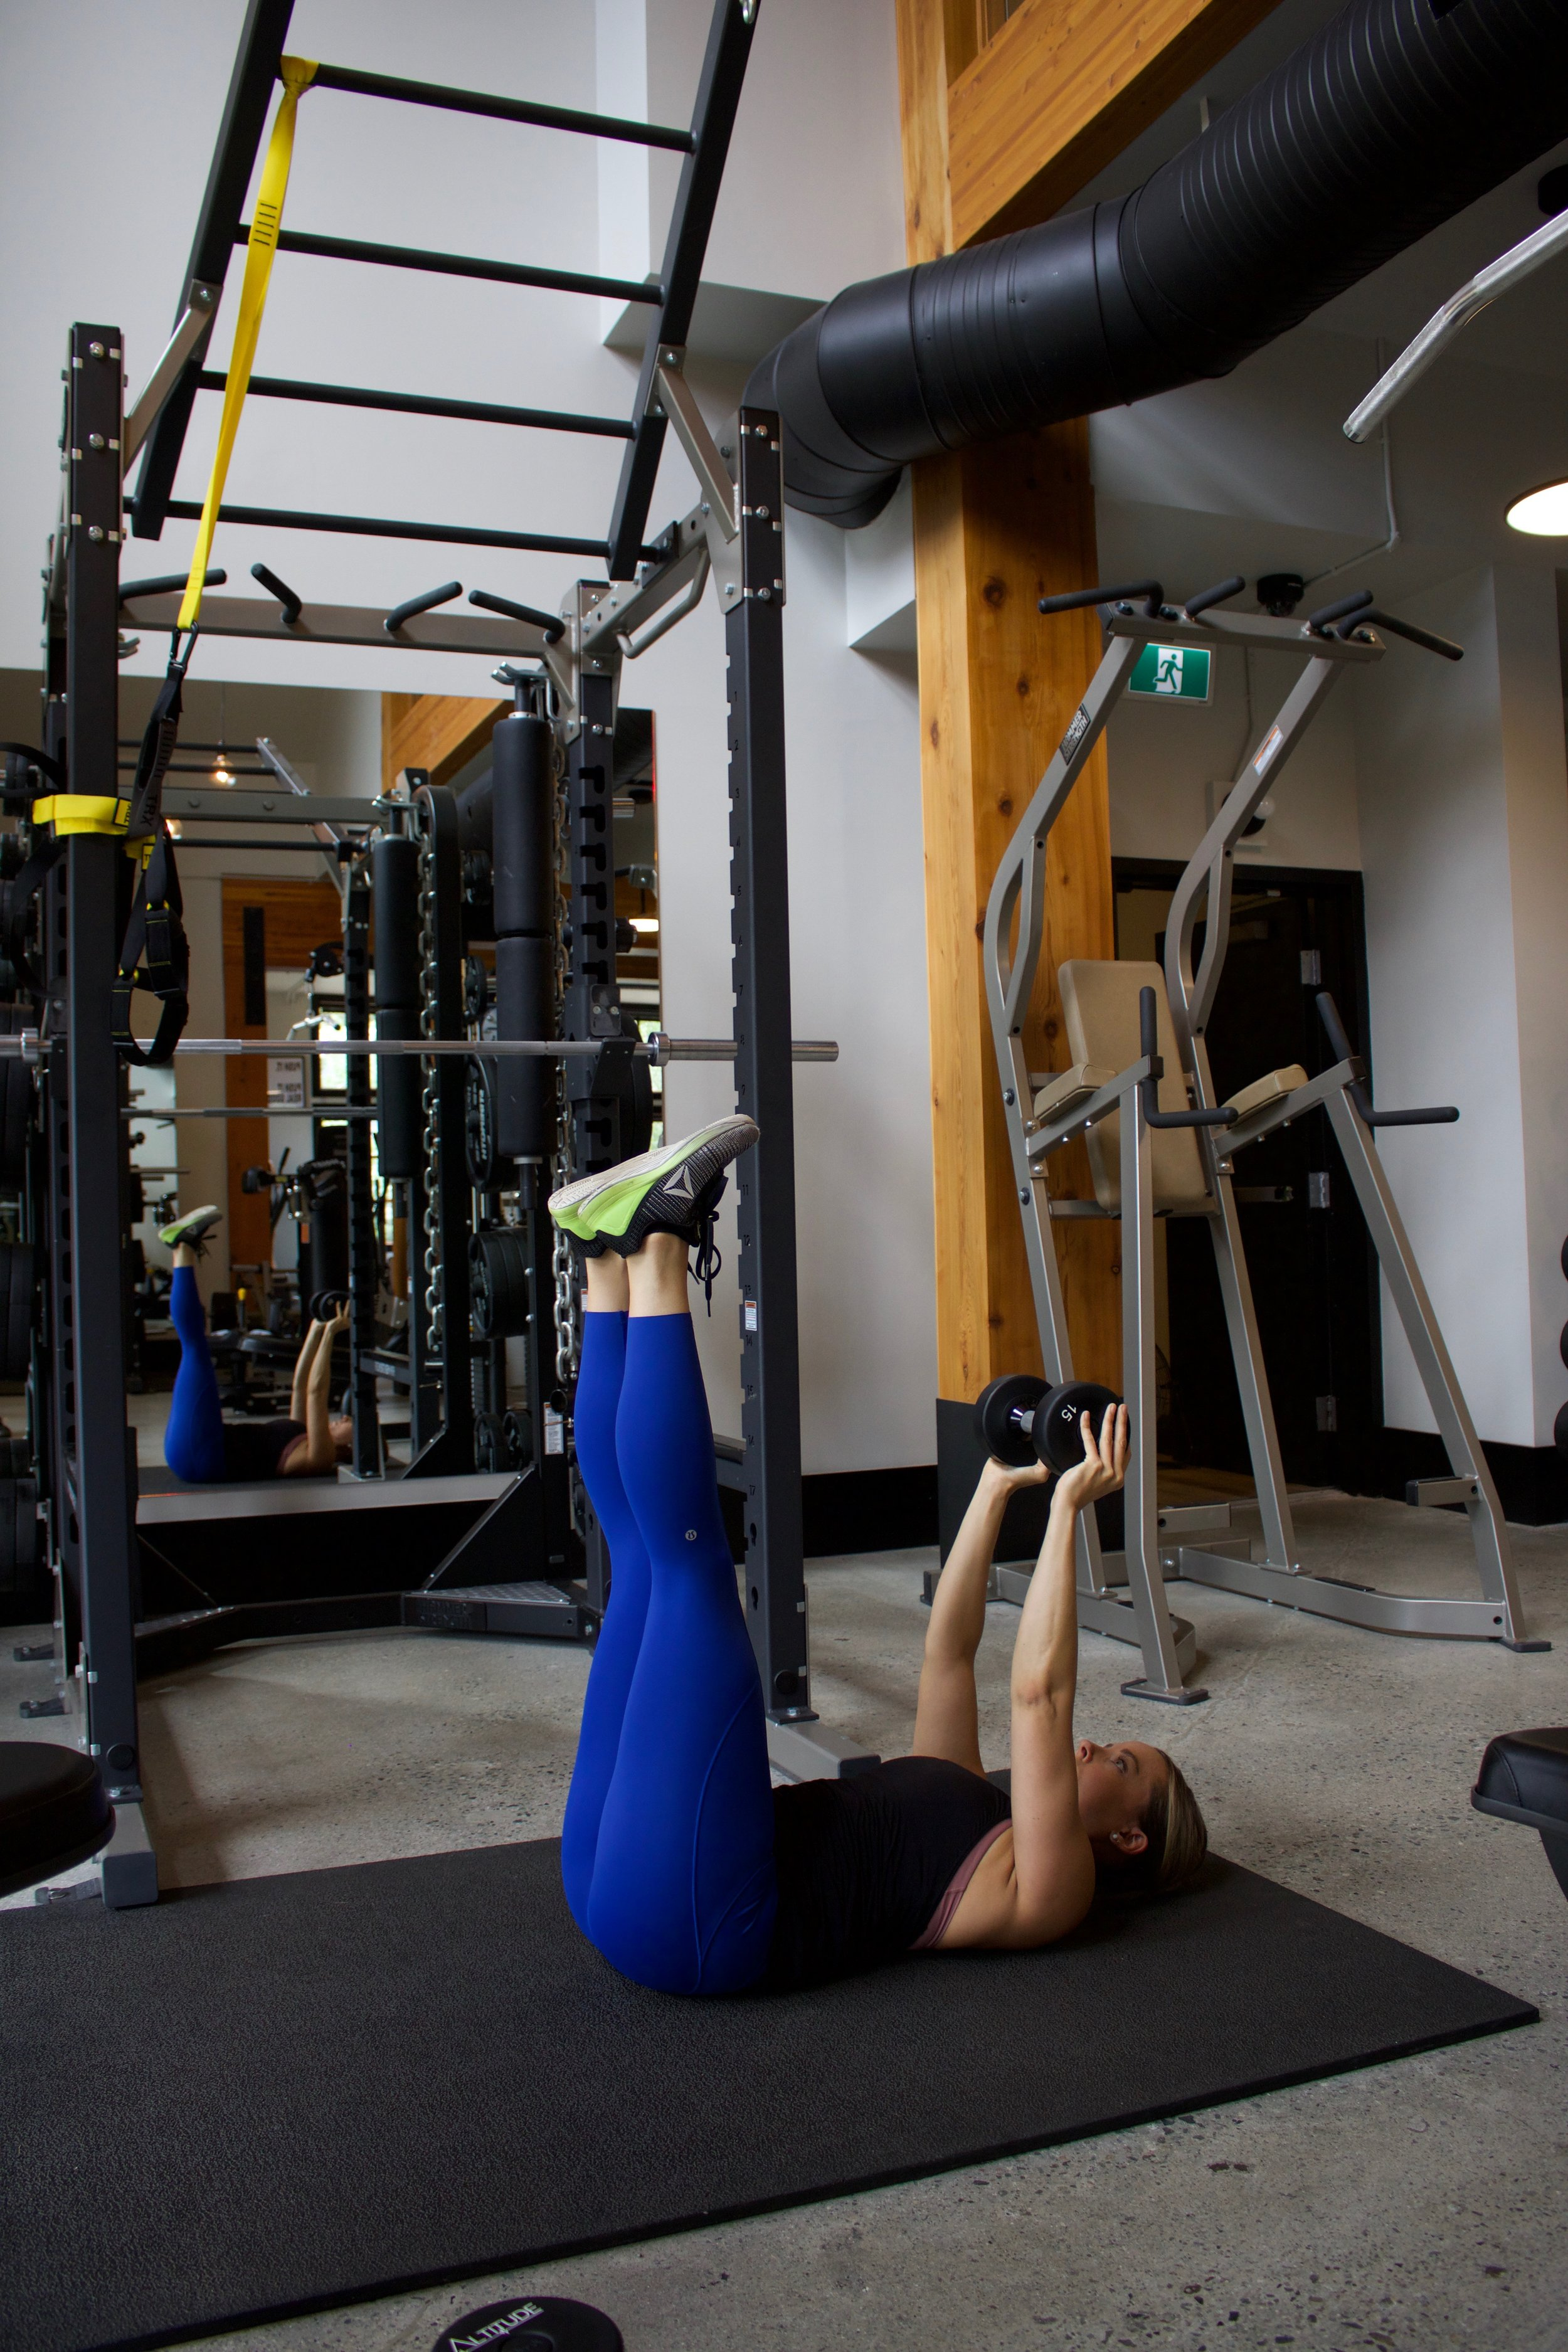 A more challenging variation with straight legs